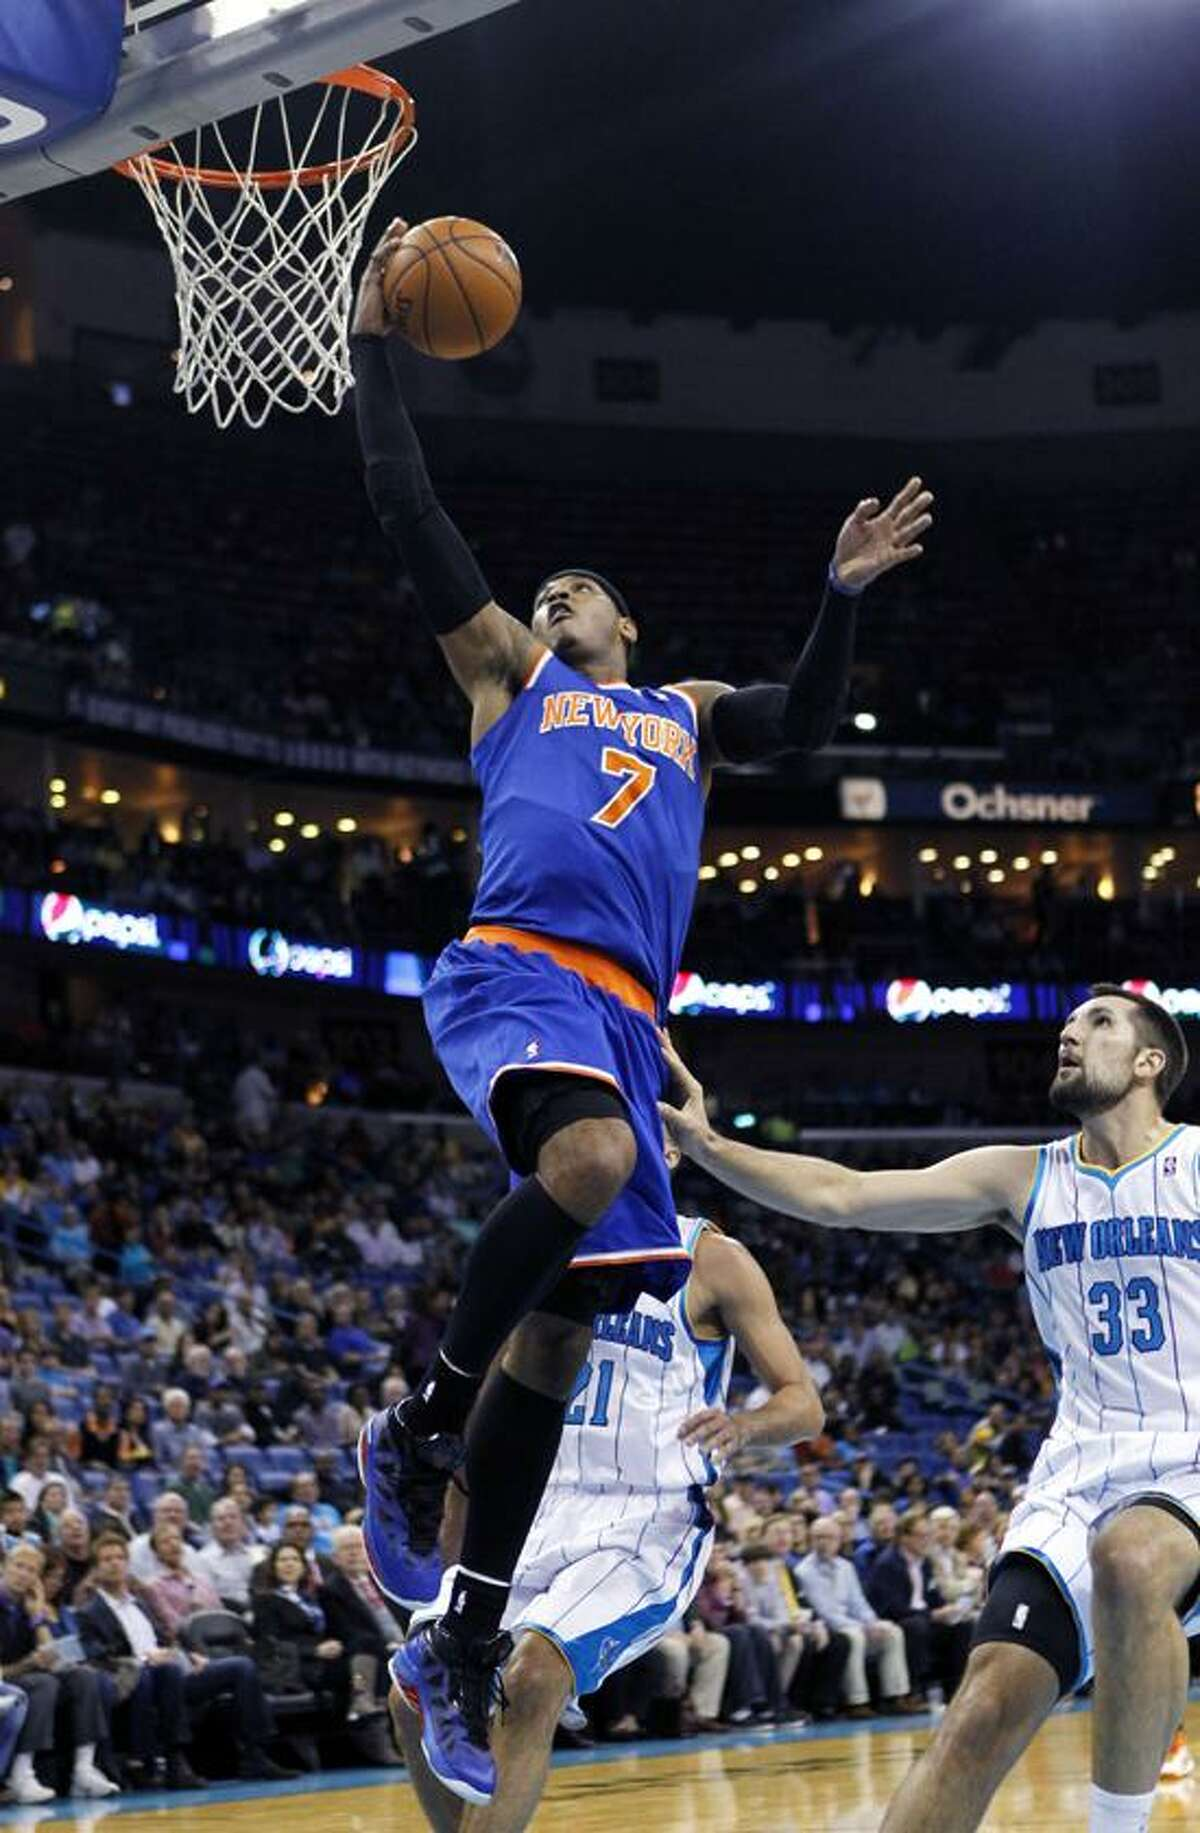 New York Knicks forward Carmelo Anthony (7) drives to the basket ahead of New Orleans Hornets forward Ryan Anderson (33) and guard Greivis Vasquez (21) during the first half of an NBA basketball game in New Orleans, Tuesday, Nov. 20, 2012. (AP Photo/Gerald Herbert)